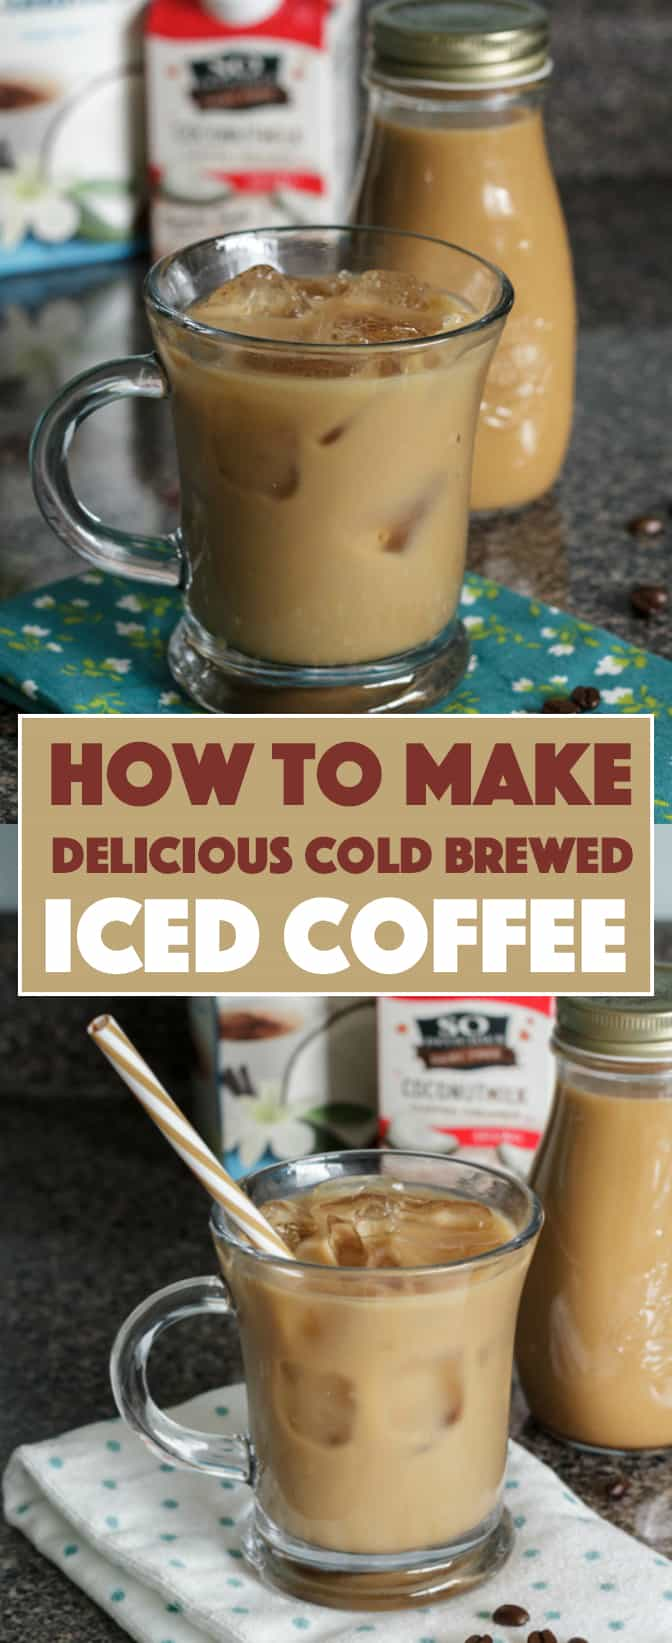 Iced Coffee How To Make Delicious Cold Brew Vanilla Iced Coffee